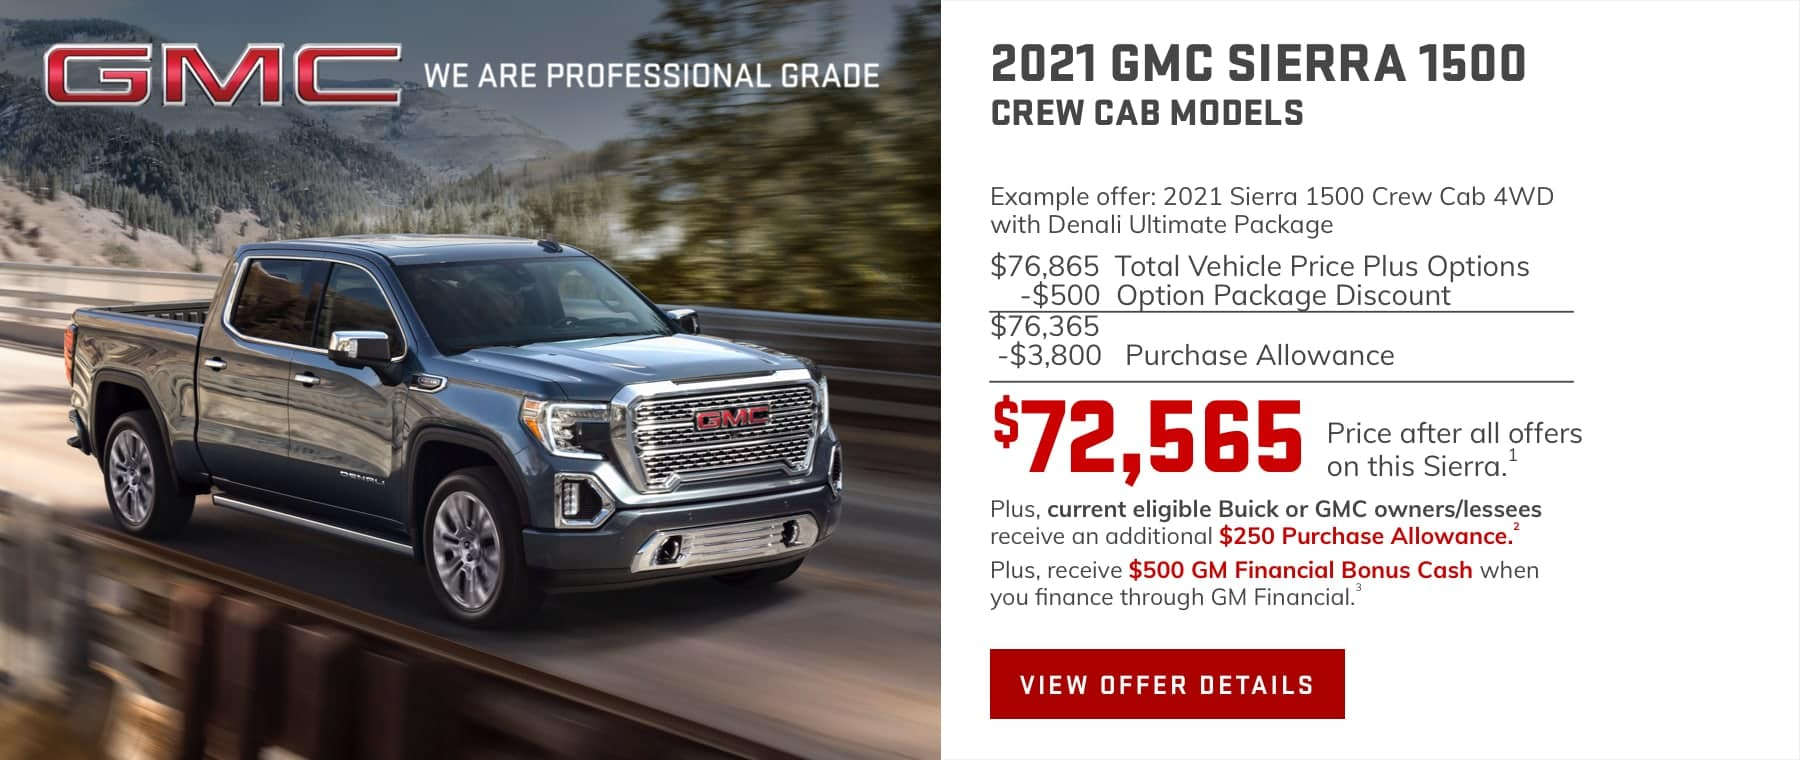 Example offer: 2021 Sierra 1500 Crew Cab 4WD with Denali Ultimate Package $76,865 Total Vehicle Price plus Options -$500 Option Package Discount $76,365 -$3,800 Purchase Allowance $72,565 Price after all offers on this Sierra.1 Plus, current eligible Buick or GMC owners/lessees receive an additional $250 Purchase Allowance.2 Plus, receive $500 GM Financial Bonus Cash when you finance through GM Financial.3